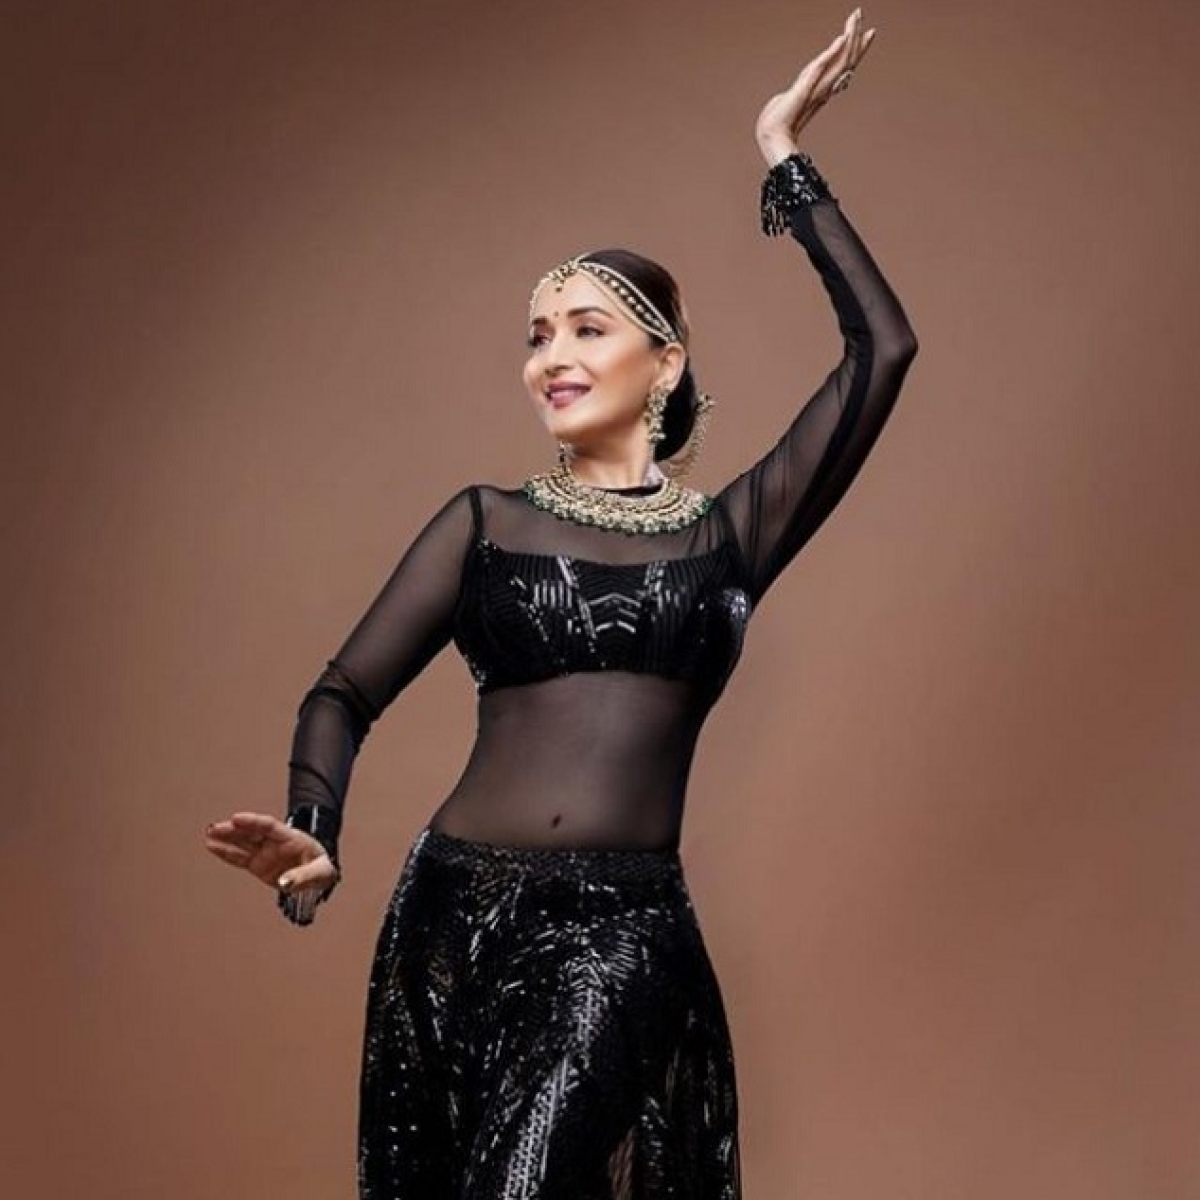 'Dhak dhak girl' Madhuri Dixit Nene talks about her love for dance